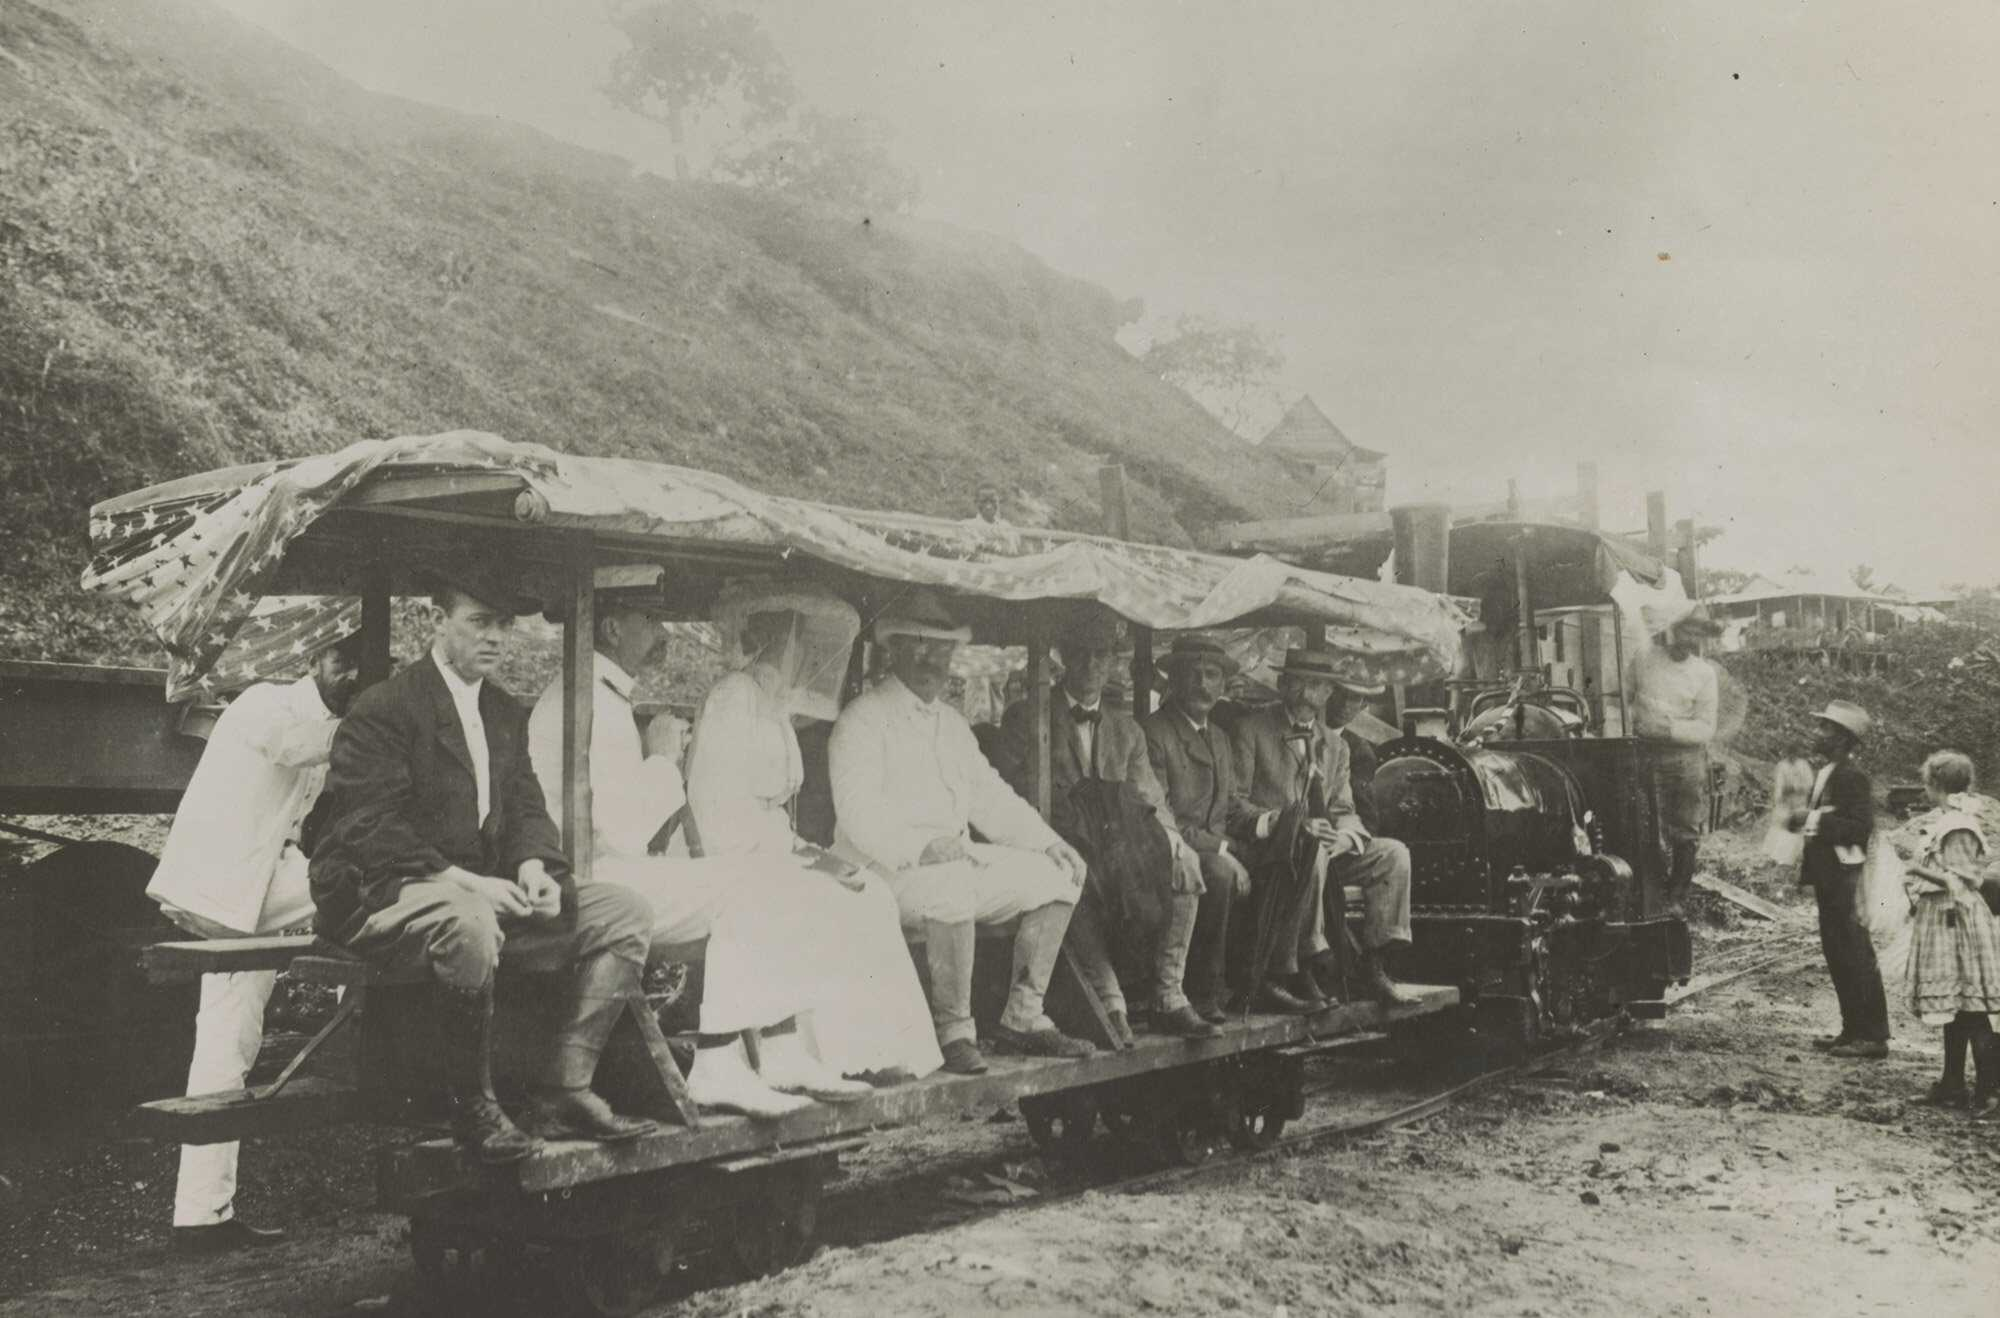 TR-LaFeber-Feature-When-President-Theodore-Roosevelt-visited-Panama-Canal-in-1906-LOC.jpg